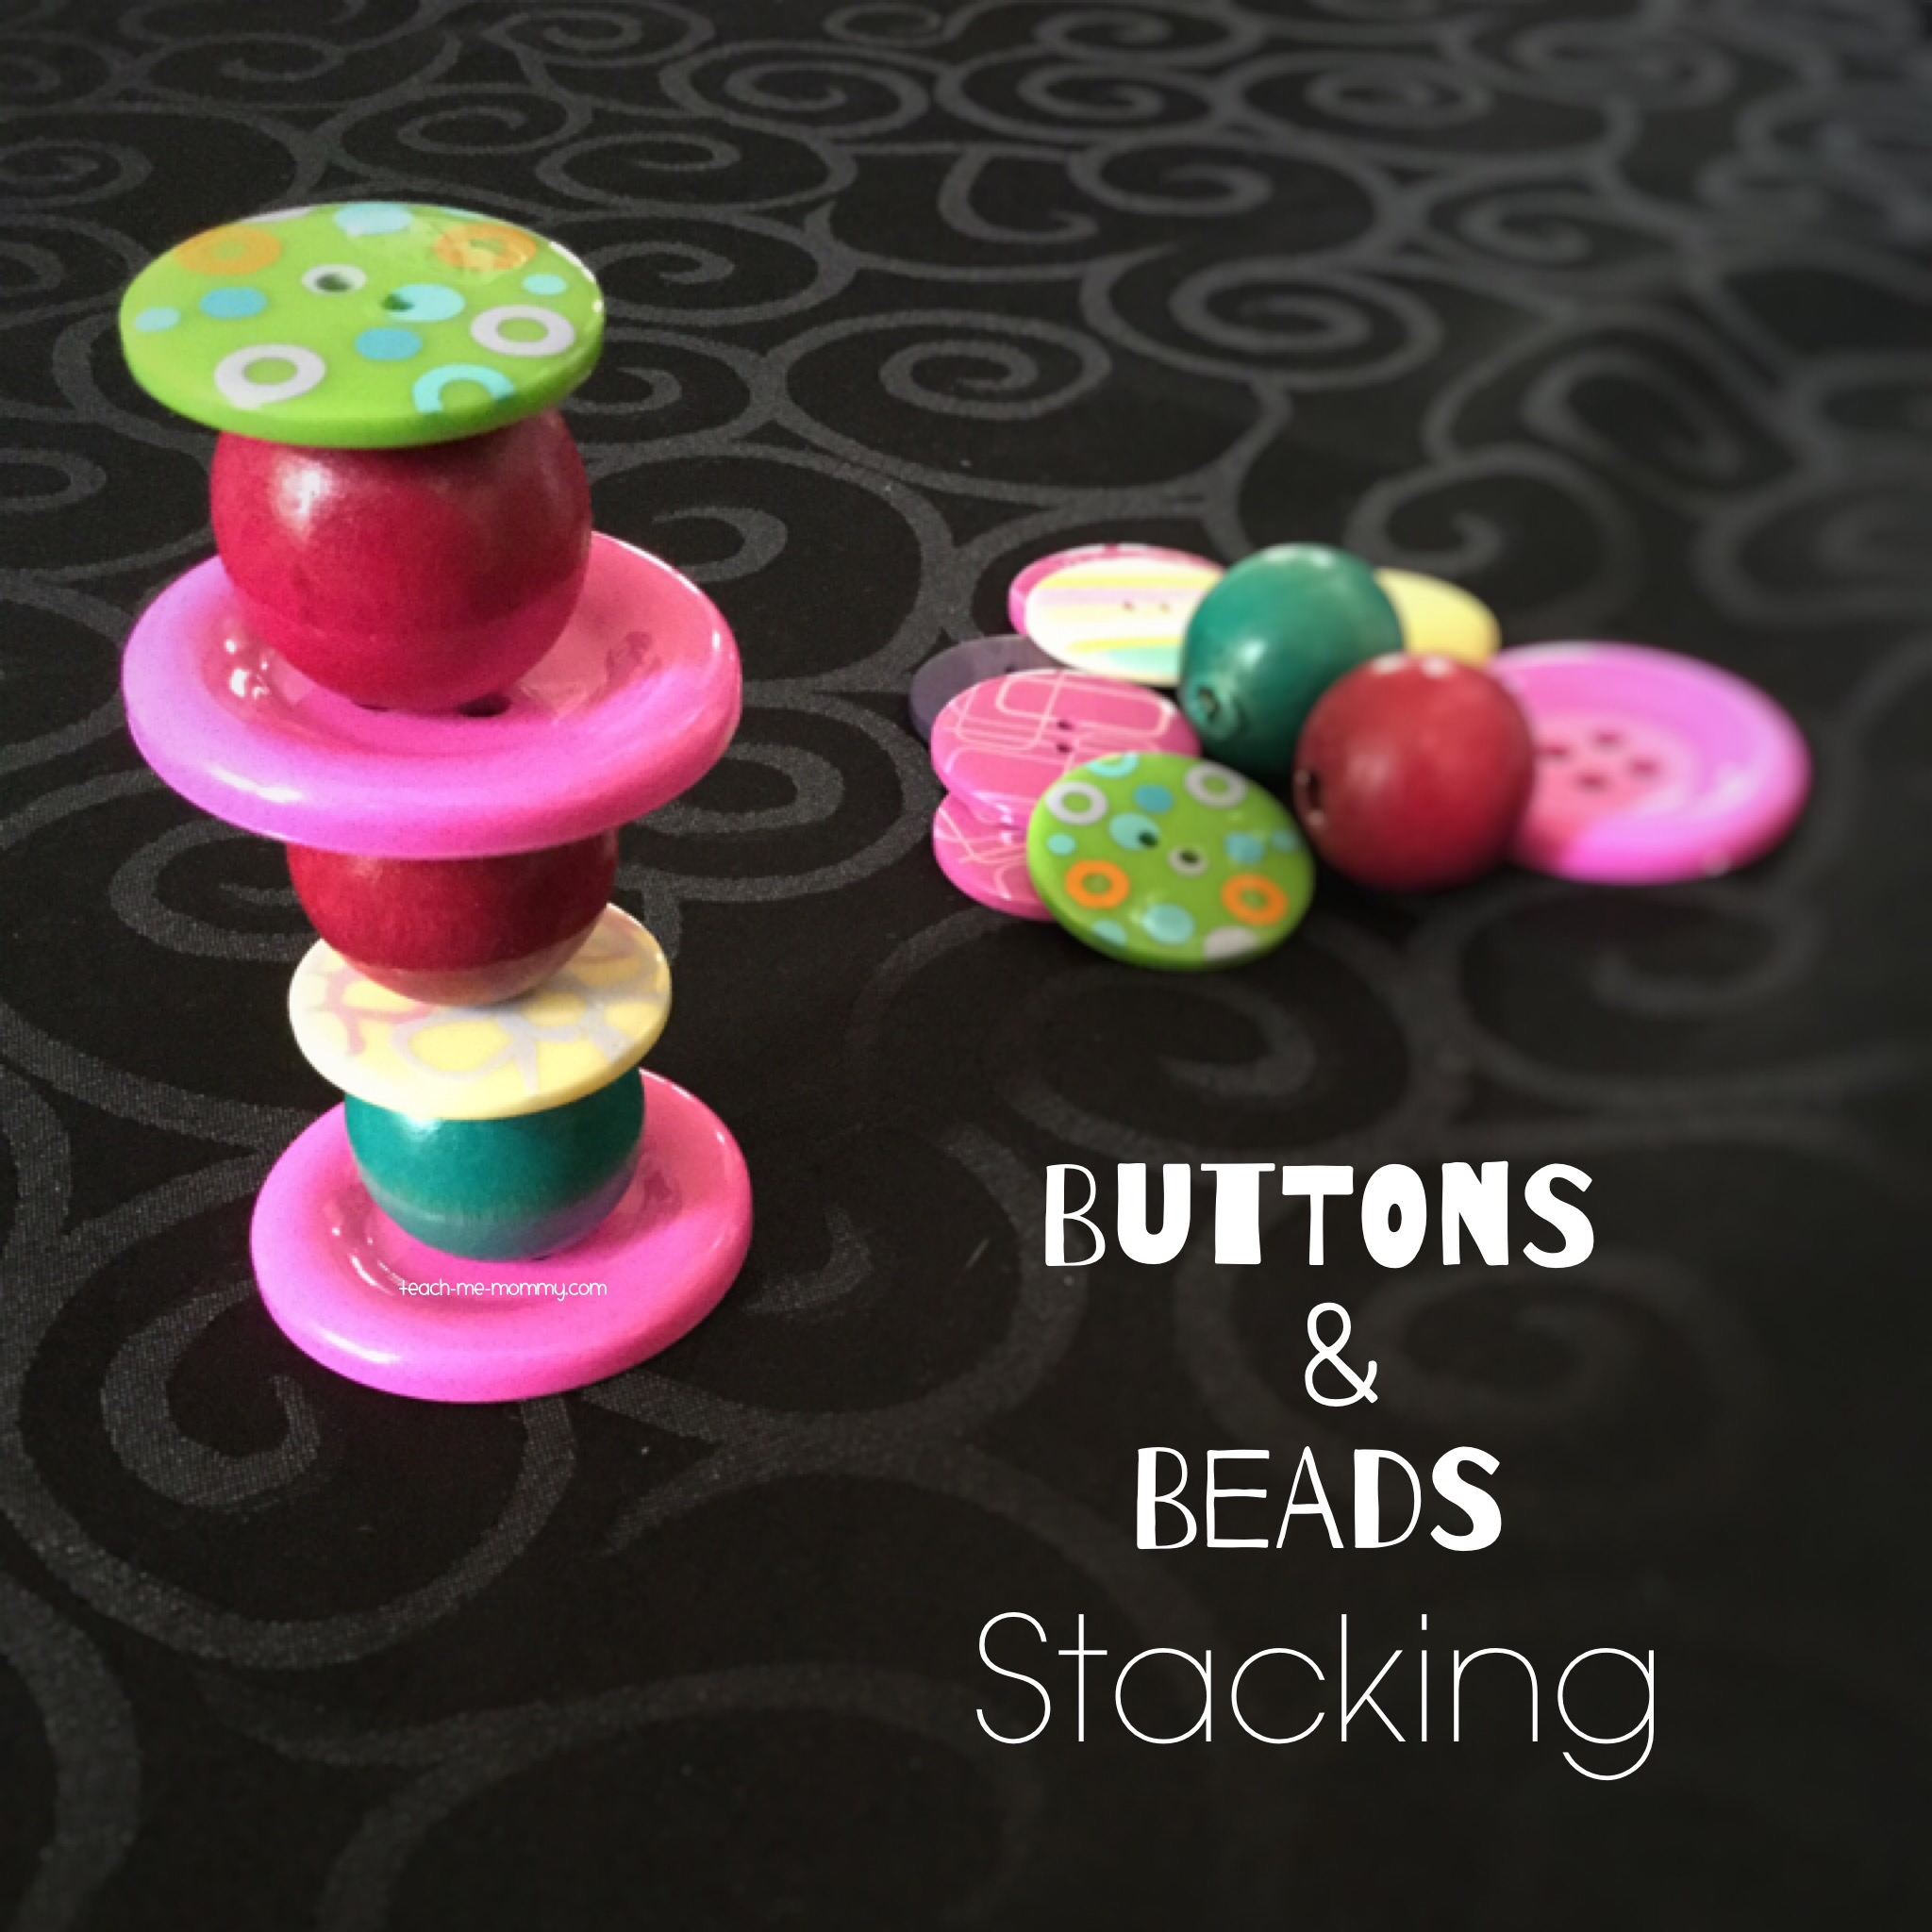 Buttons & Beads Stacking